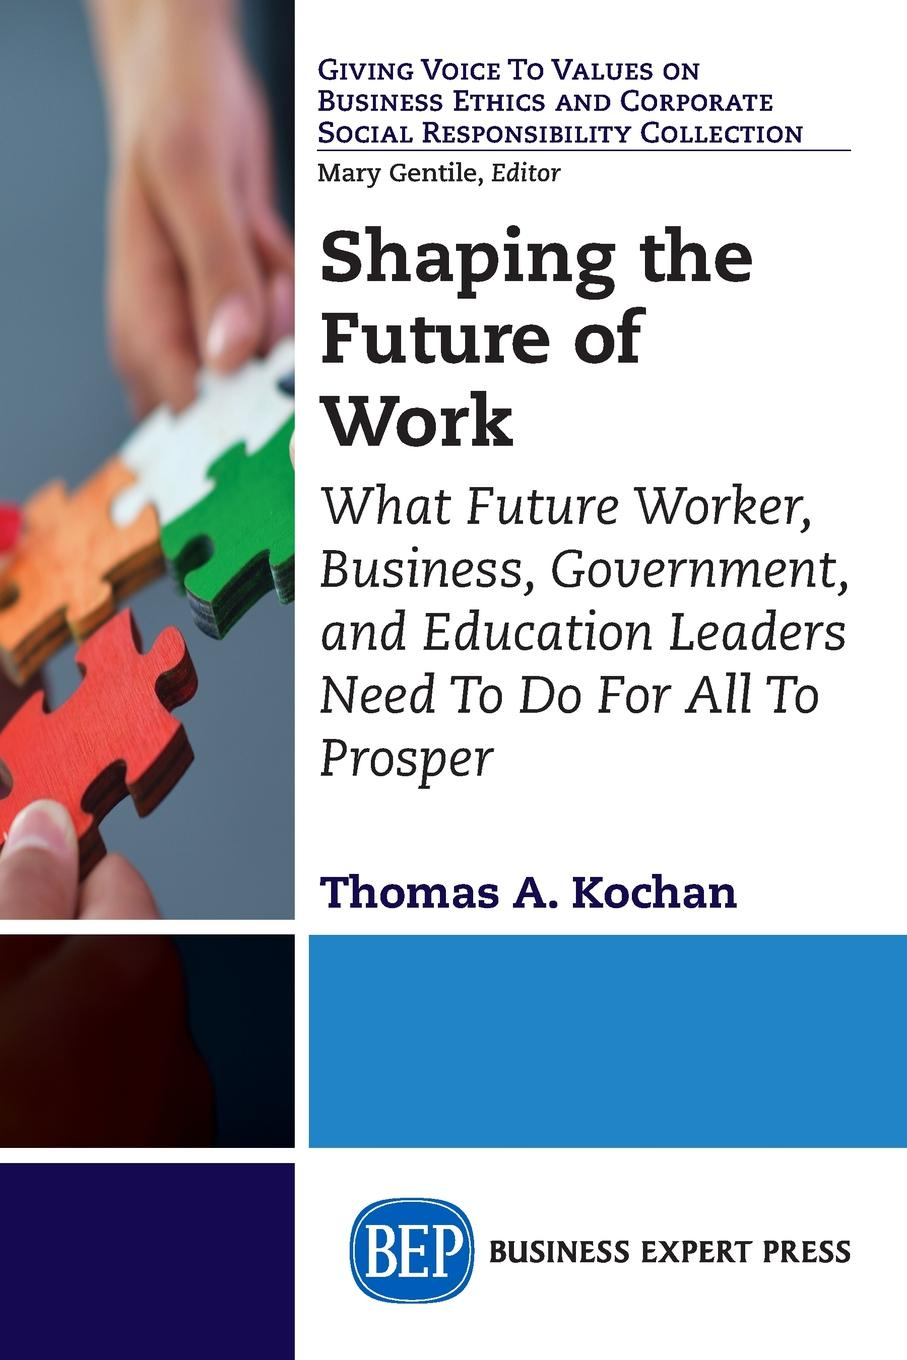 Thomas A. Kochan Shaping the Future of Work. What Future Worker, Business, Government, and Education Leaders Need To Do For All To Prosper suzanne morse w smart communities how citizens and local leaders can use strategic thinking to build a brighter future